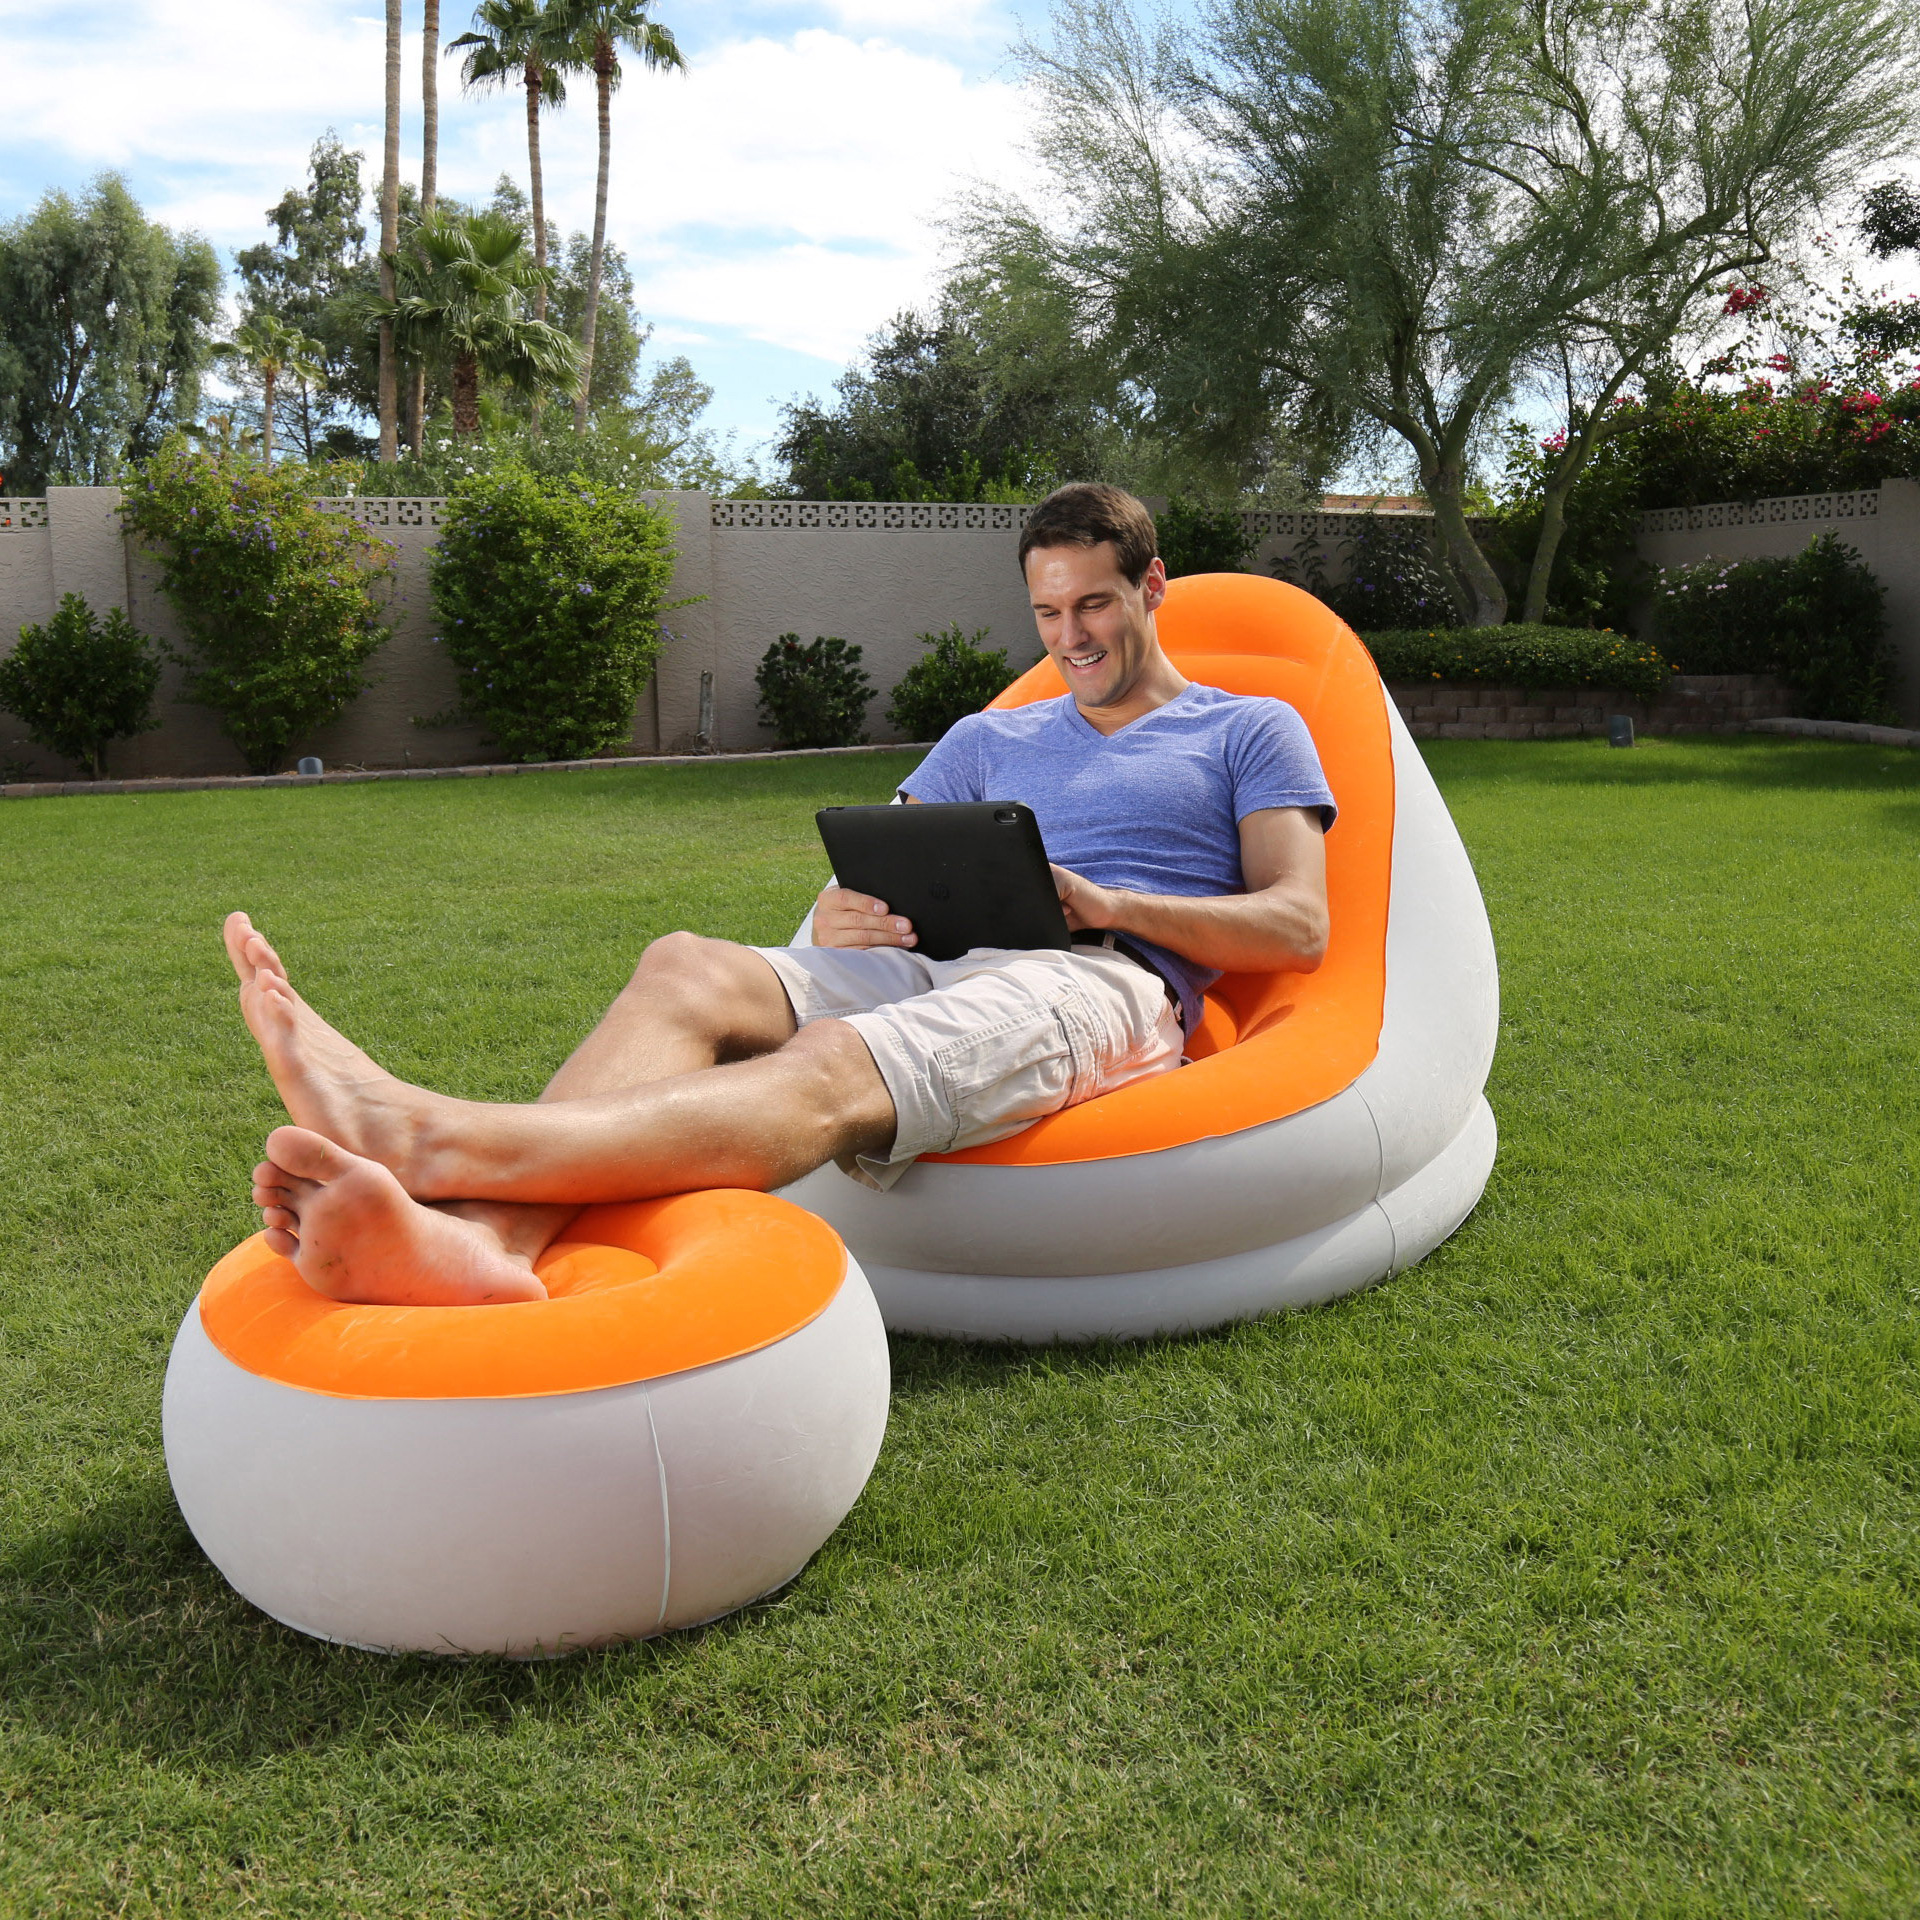 Bestway Doppel-luftmatratze Beach Bed Bestway Inflatable Furniture Comfort Cruiser Air Chair